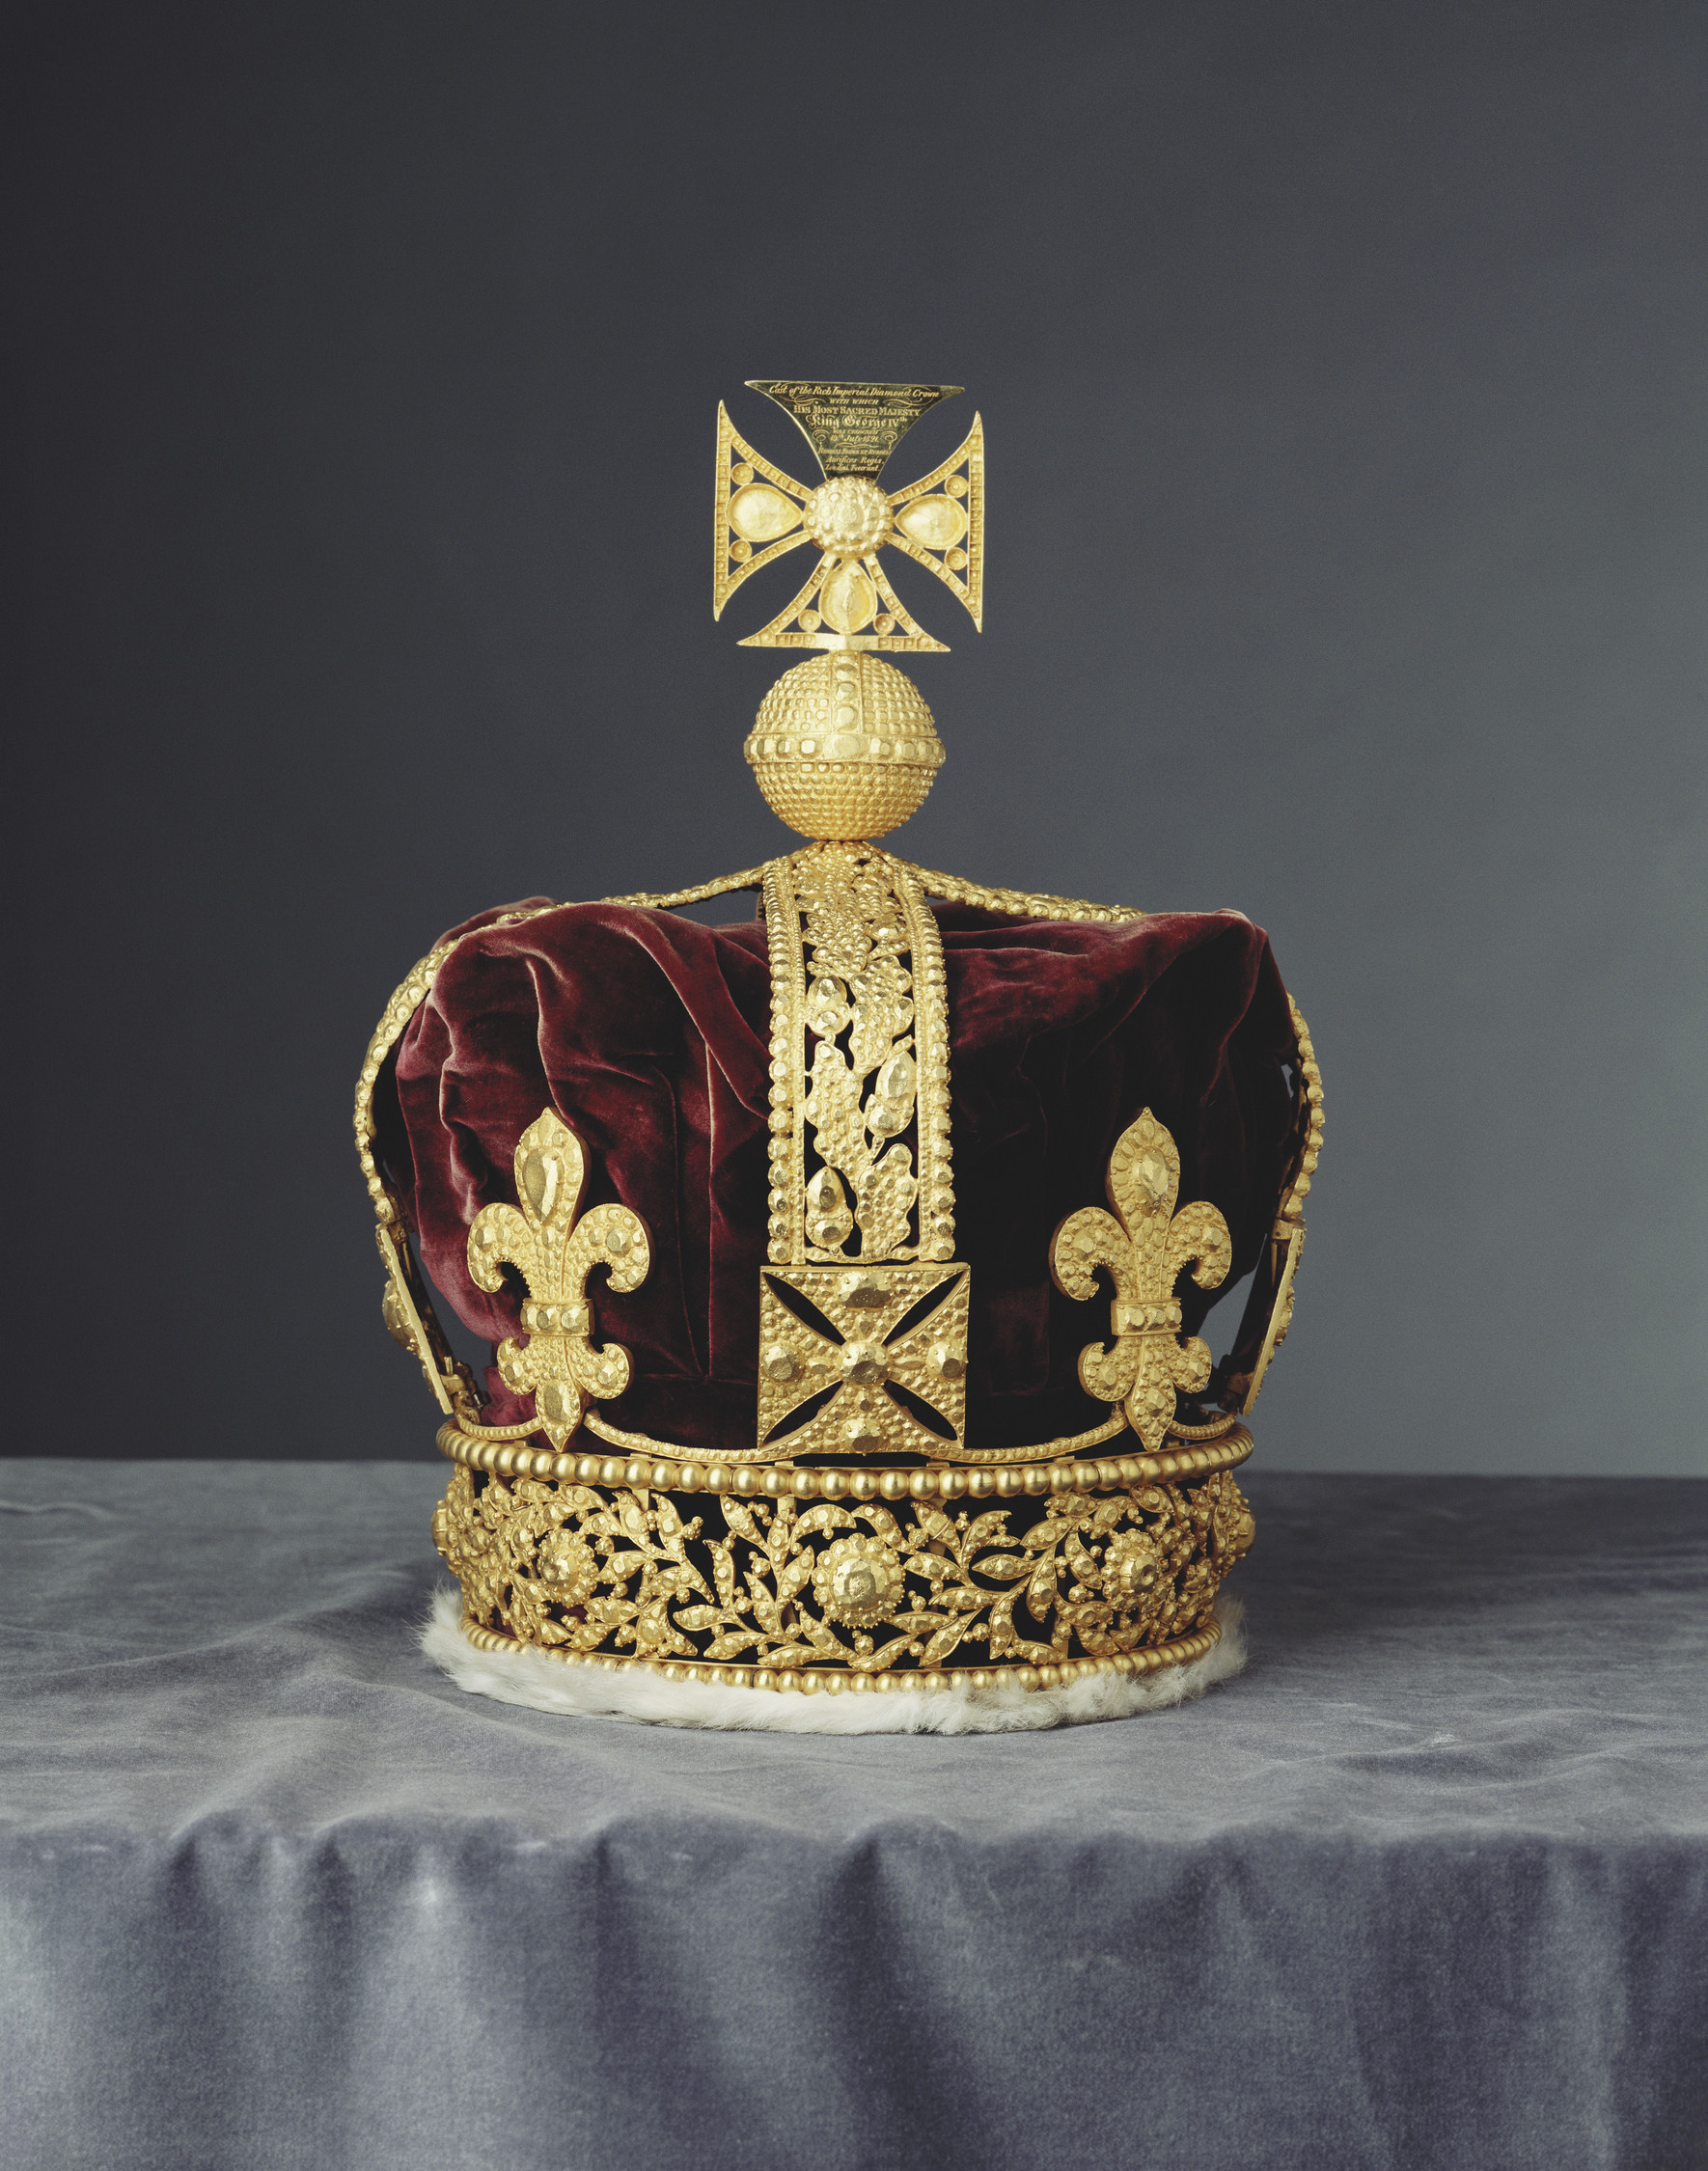 Rundell, Bridge and Rundell, Cast of the Imperial State Crown, 1823